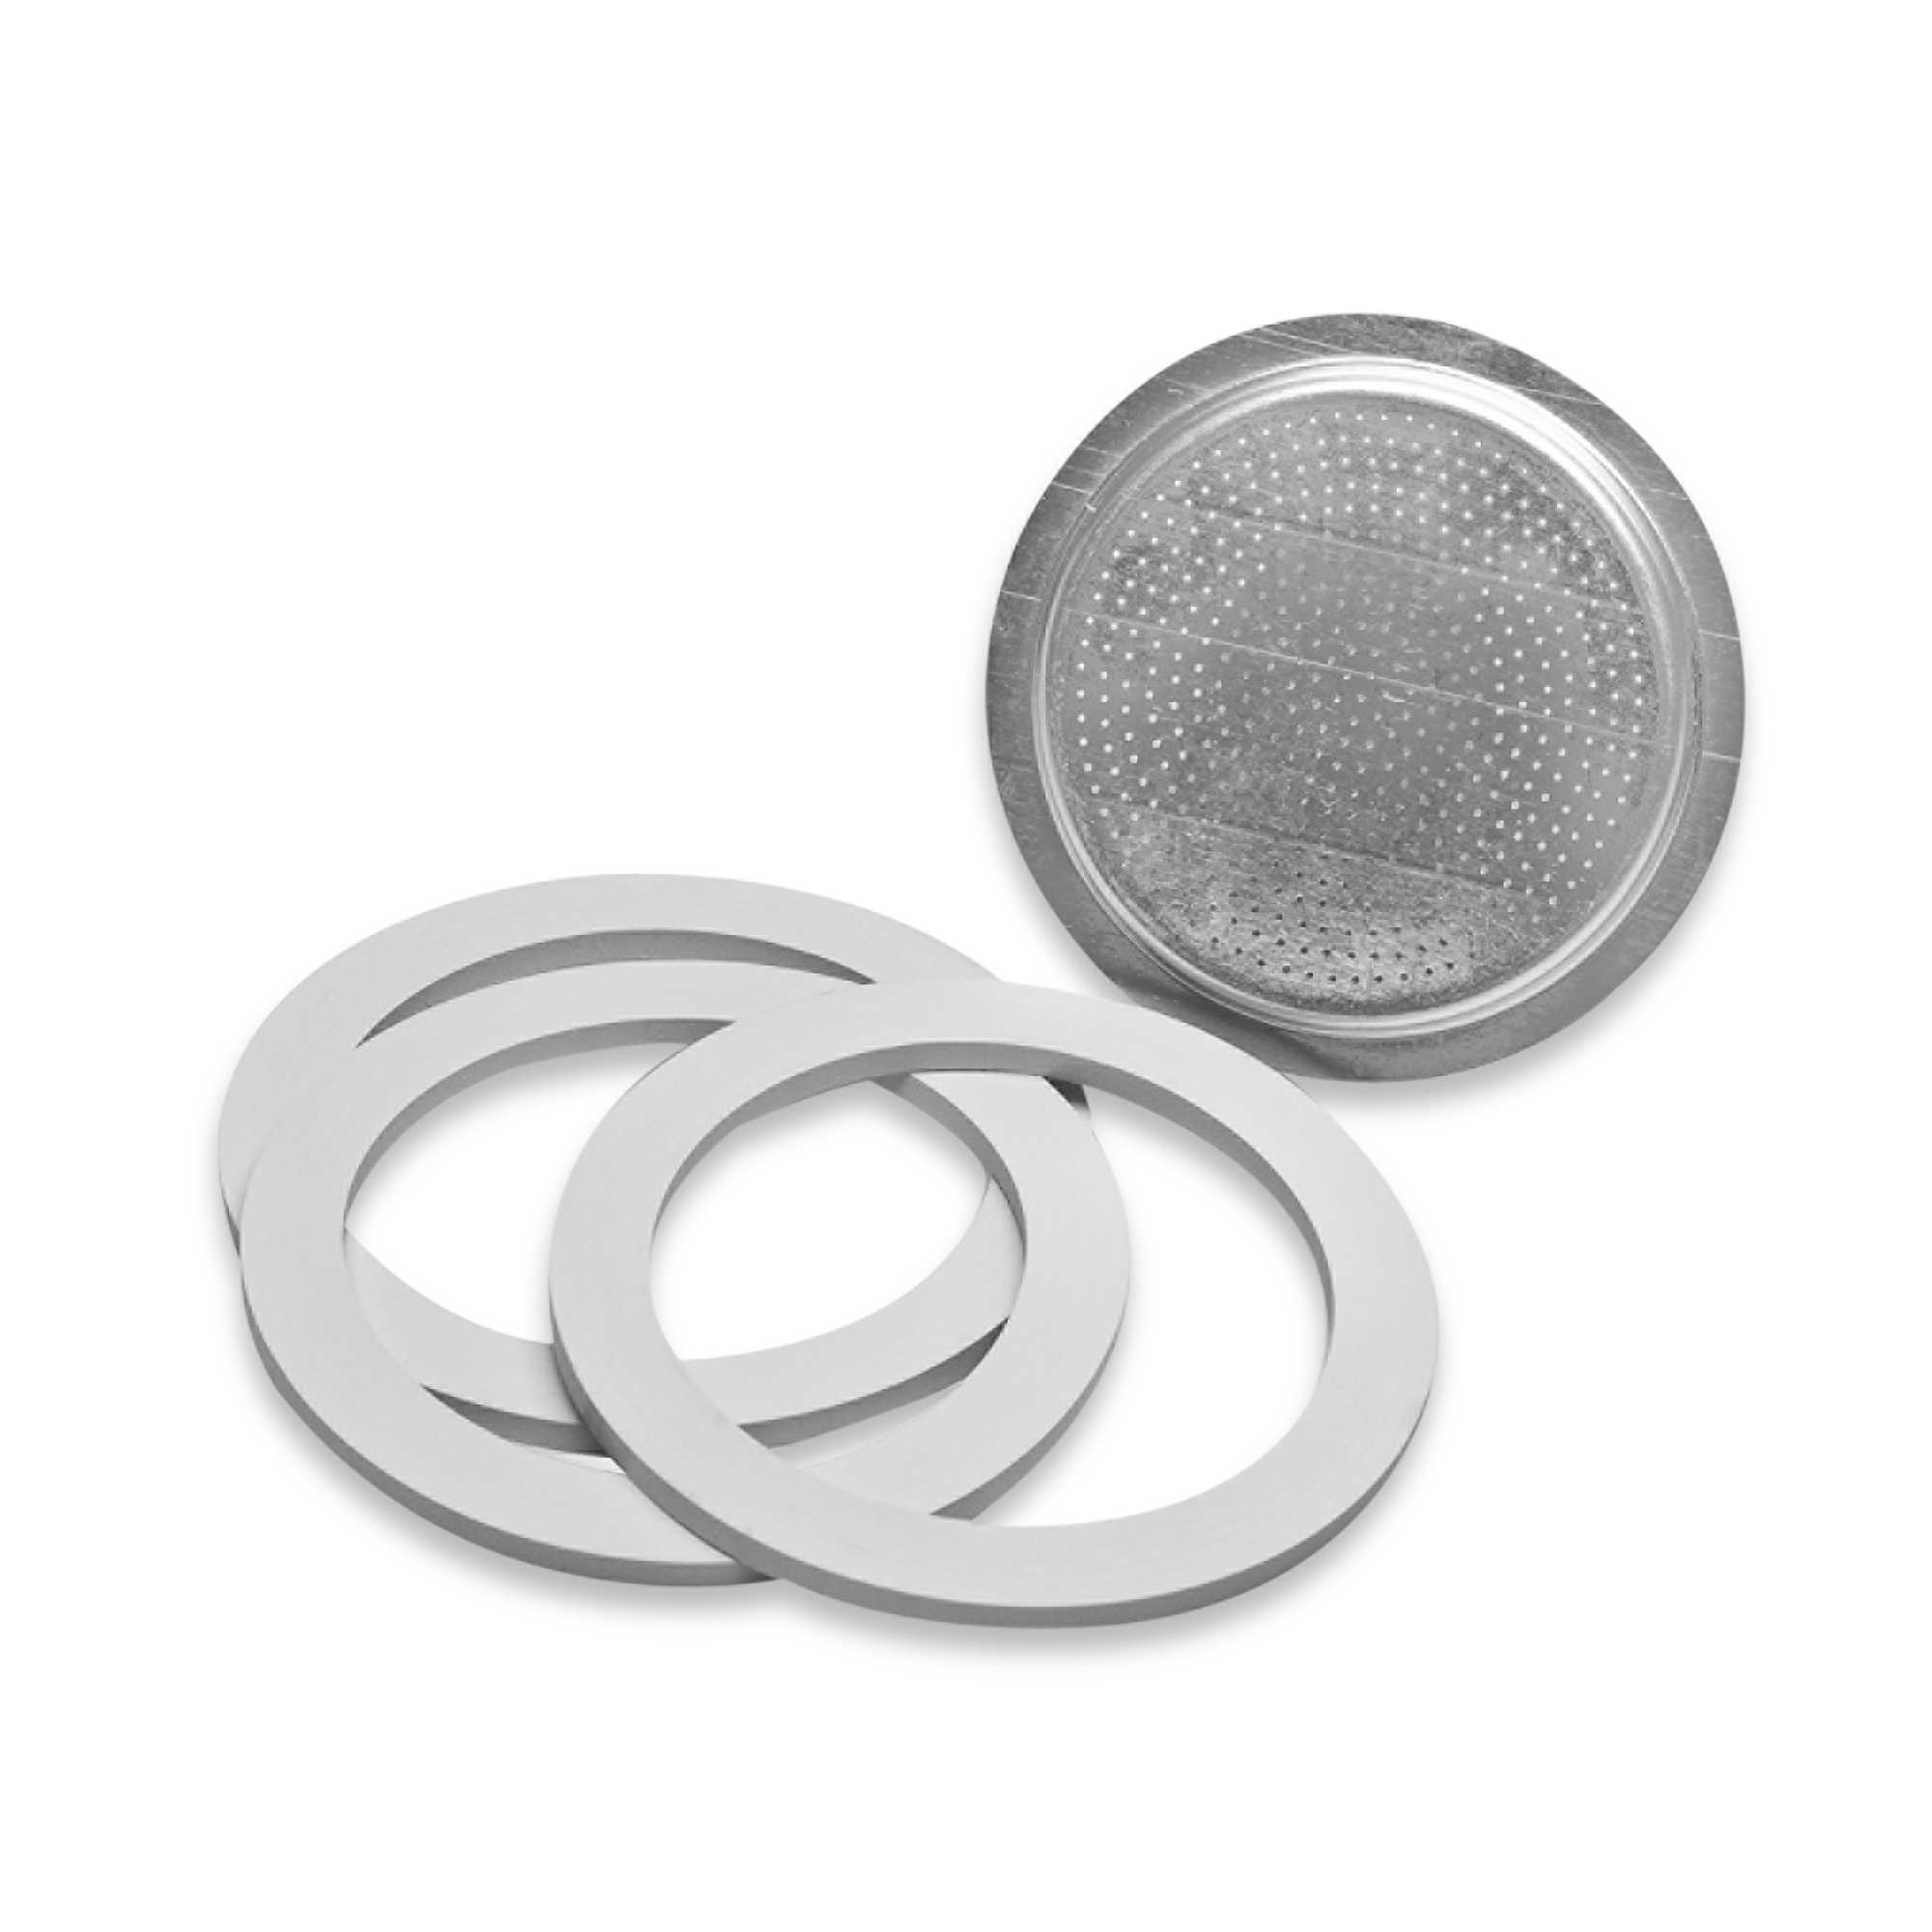 Italian Coffee Maker Seals : Bialetti Gasket and Filter Set for Stainless Steel Espresso Makers - 6 Cup eBay